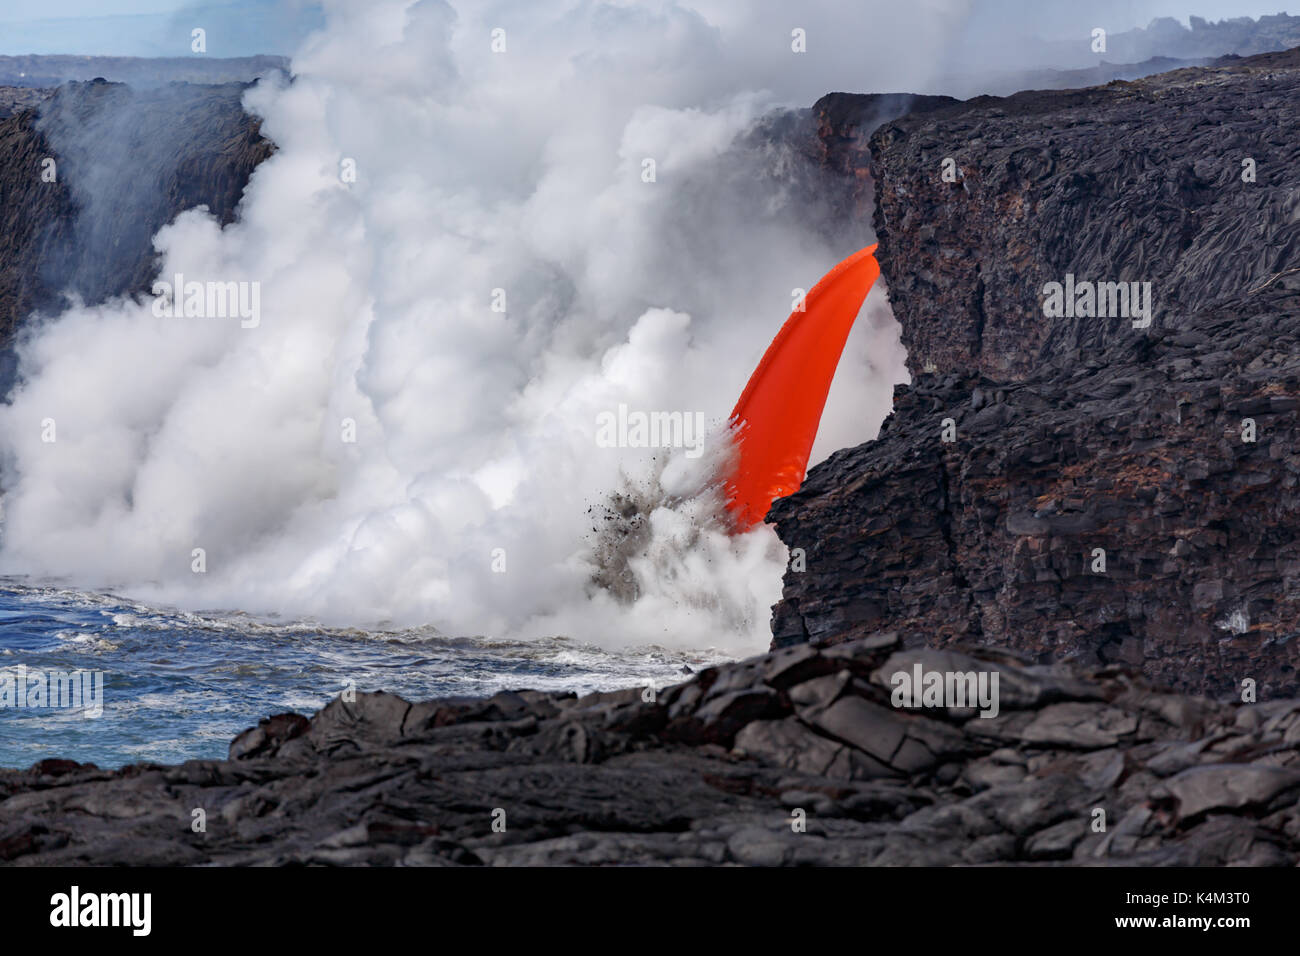 Closeup view of the red molten lava of an active volcano from a mountaintop in Hawaii's National Park flowing like a fire hose the massive cloud of st - Stock Image